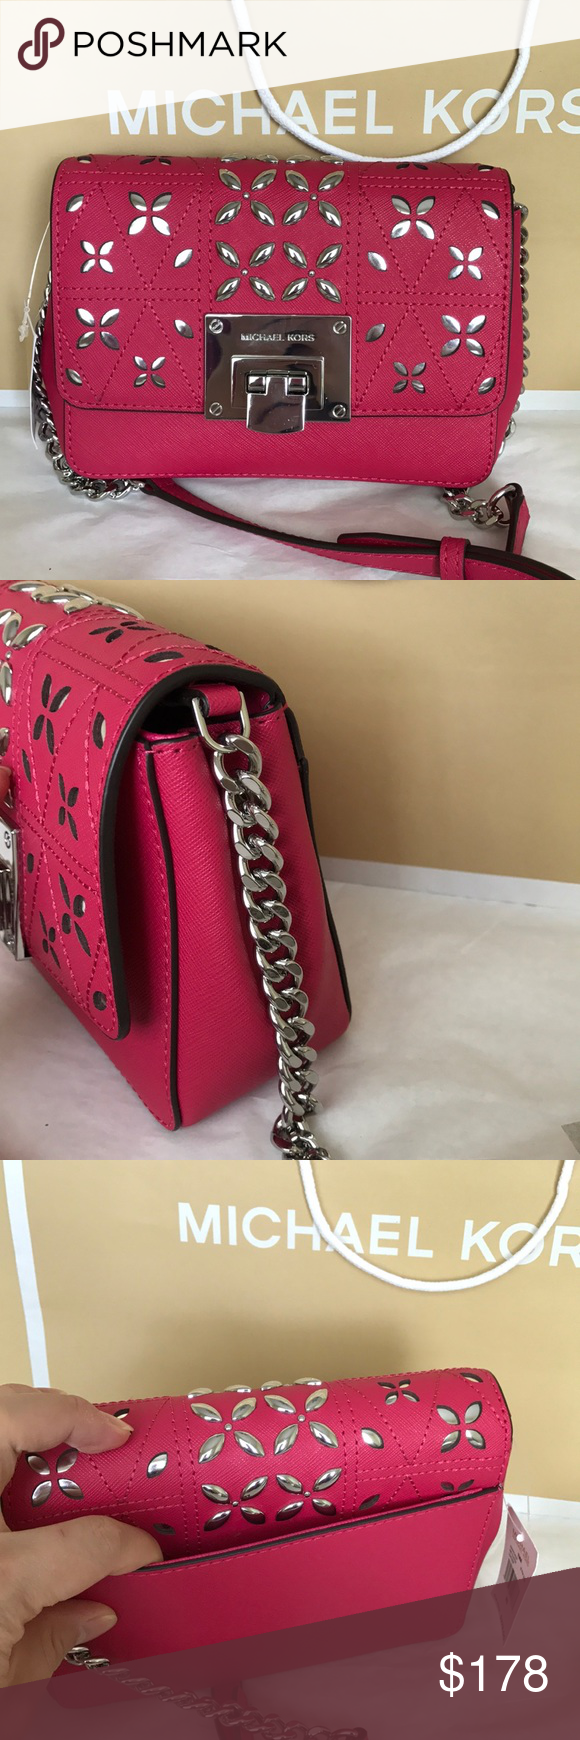 🎆🌸mk clutch crossbody🎆Tina small leather Michael Kors small crossbody clutch.  Ultra pink color silver hard wear. Strap adjustable   removable can wear ... 35a544c946